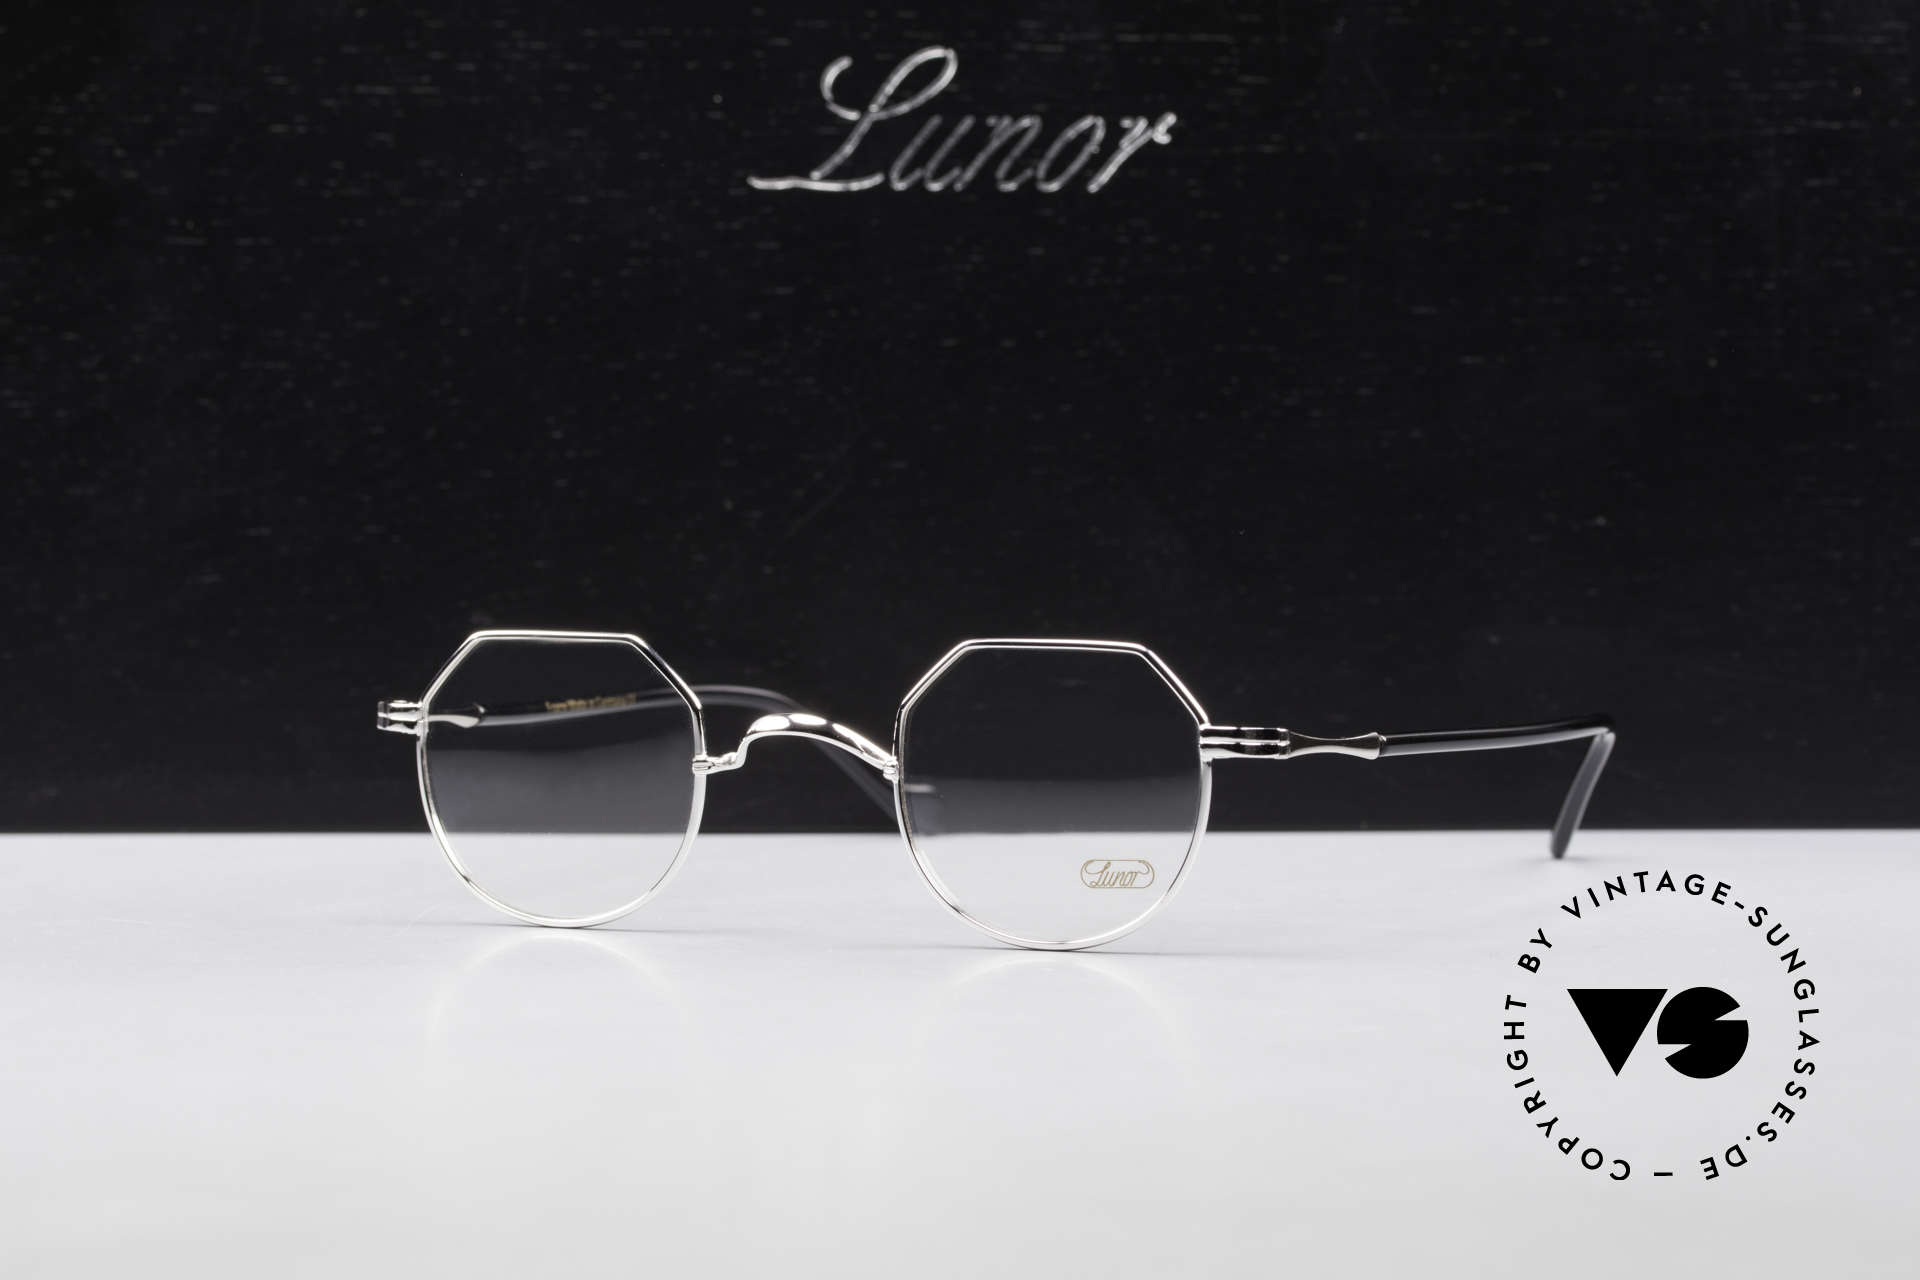 Lunor II A 18 Square Panto Frame Platinum, Size: small, Made for Men and Women